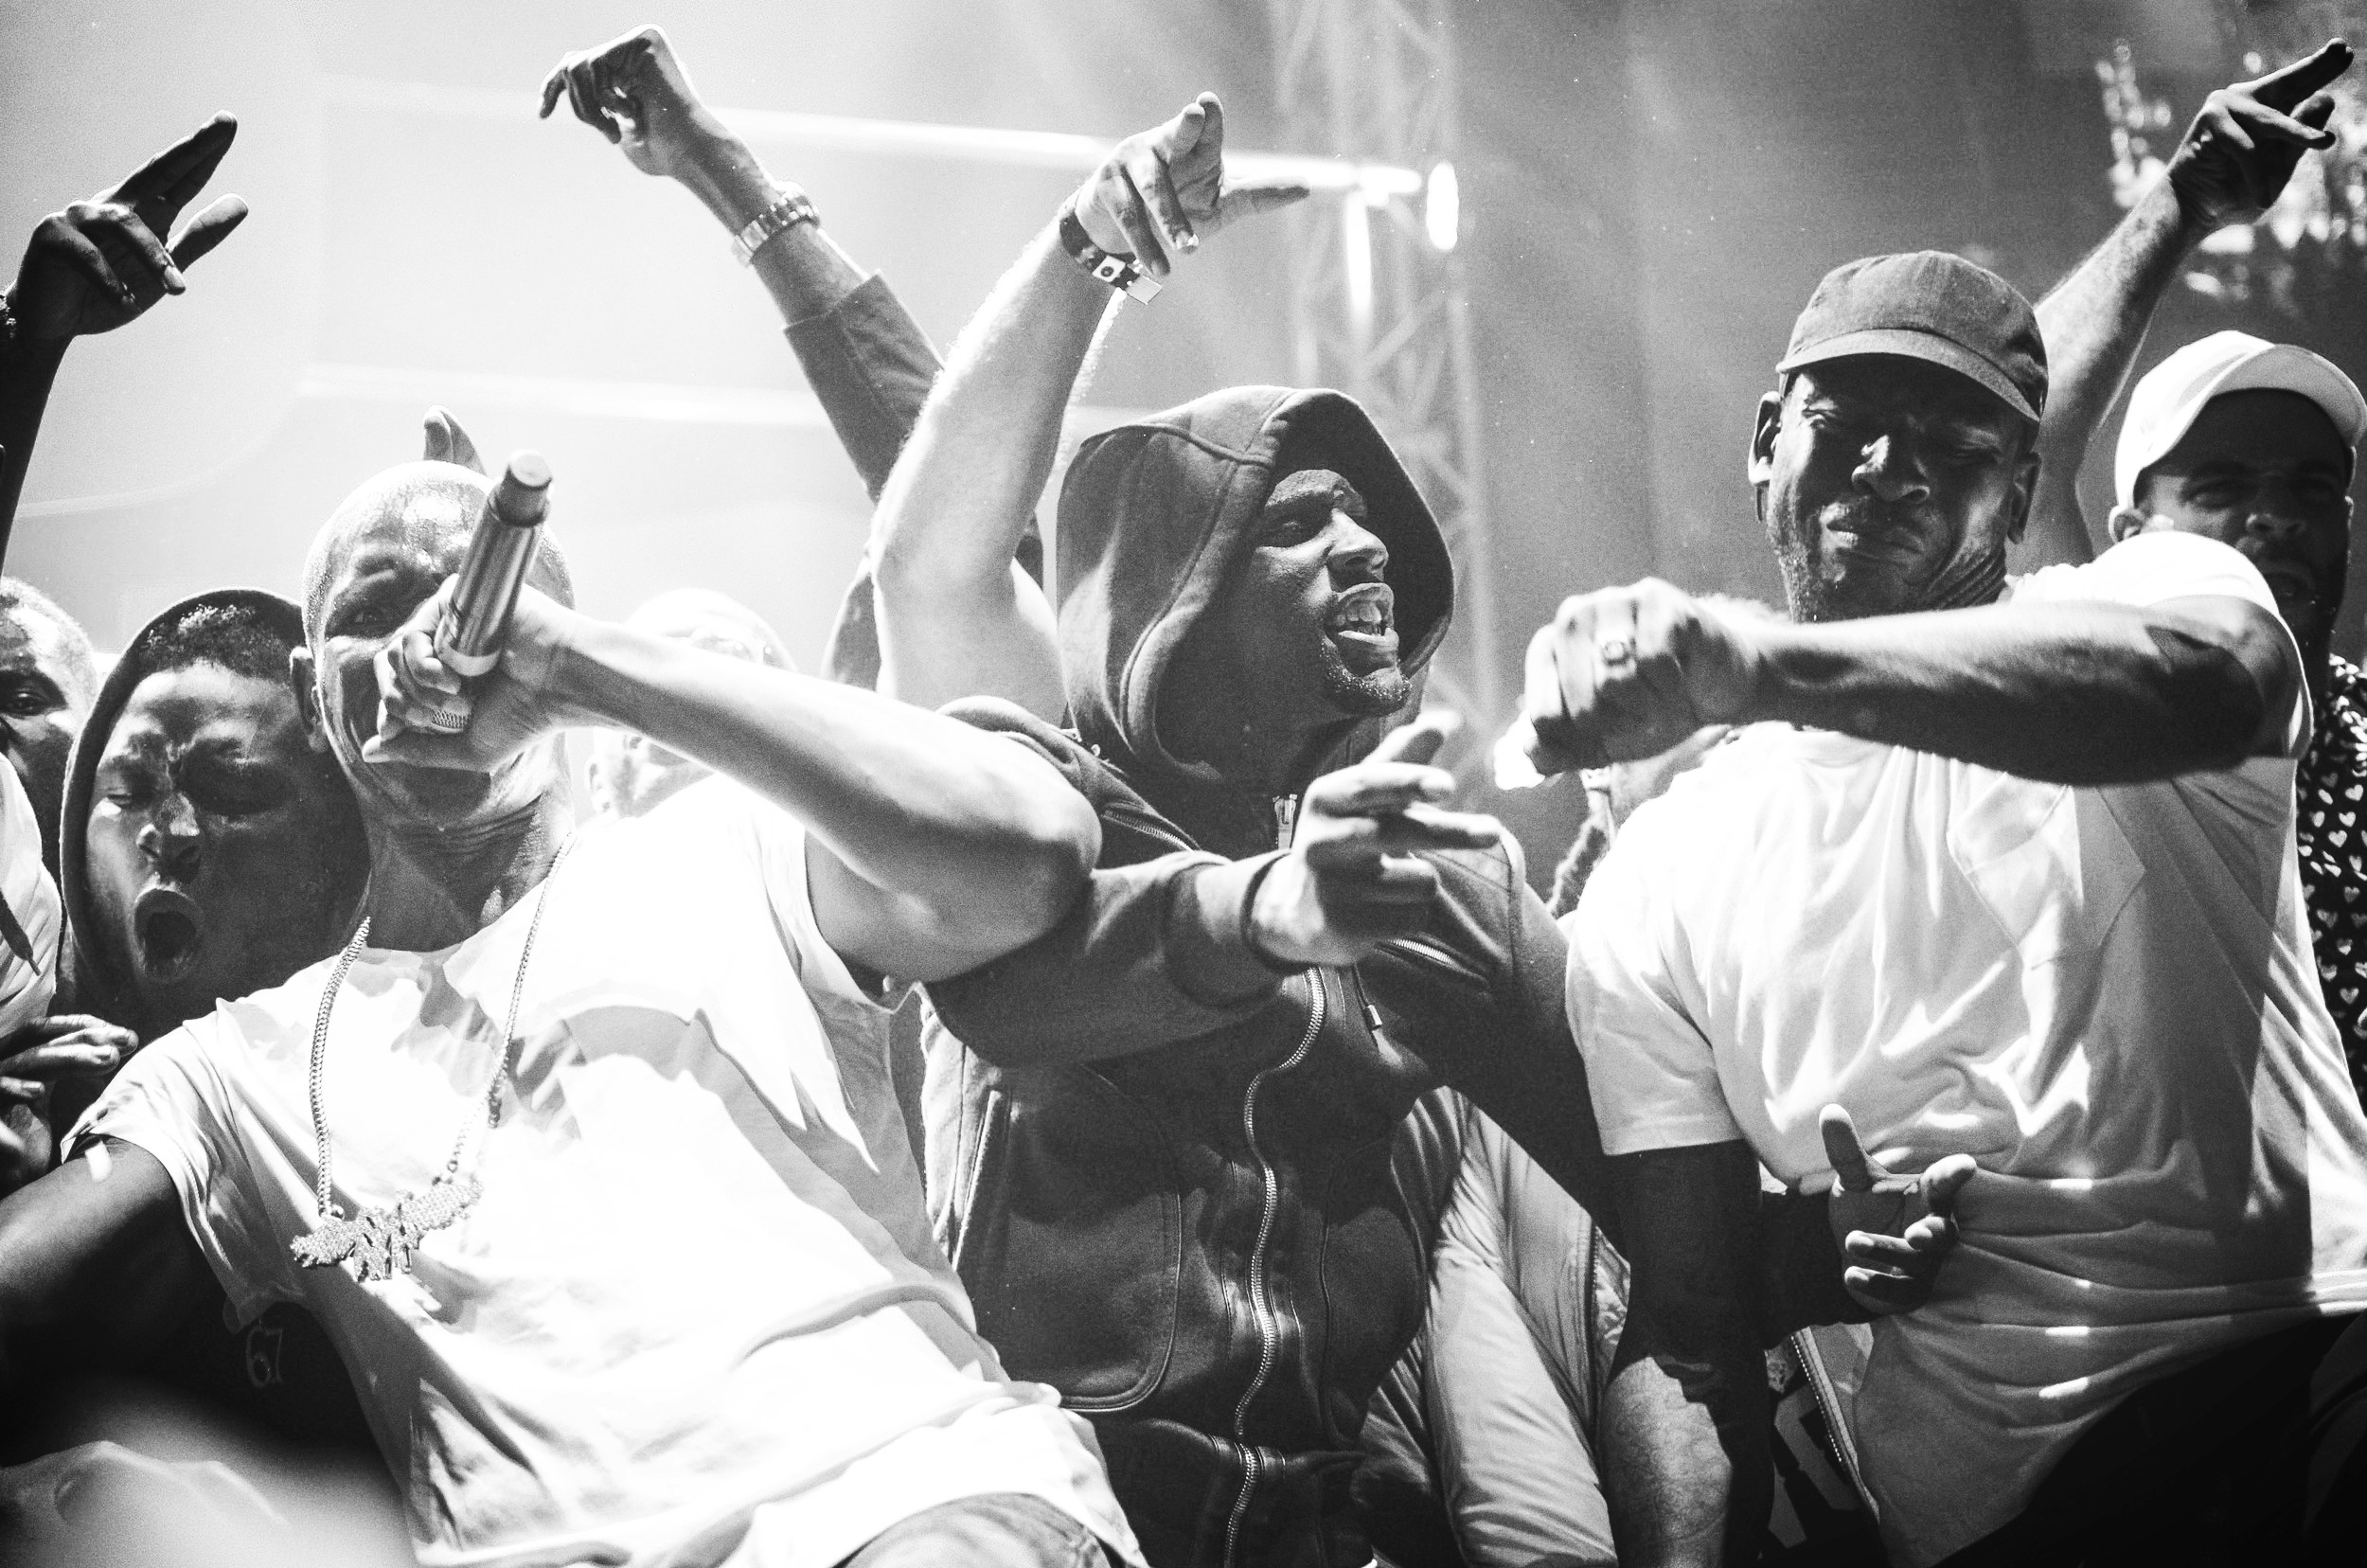 Giggs with Skepta performing  Whippin Excursion at the GRM Daily Rated Awards // 071116. An impromptu moment, everyone rushed on stage and I was fortunate enough to capture it. Skepta's skanks were hilarious!